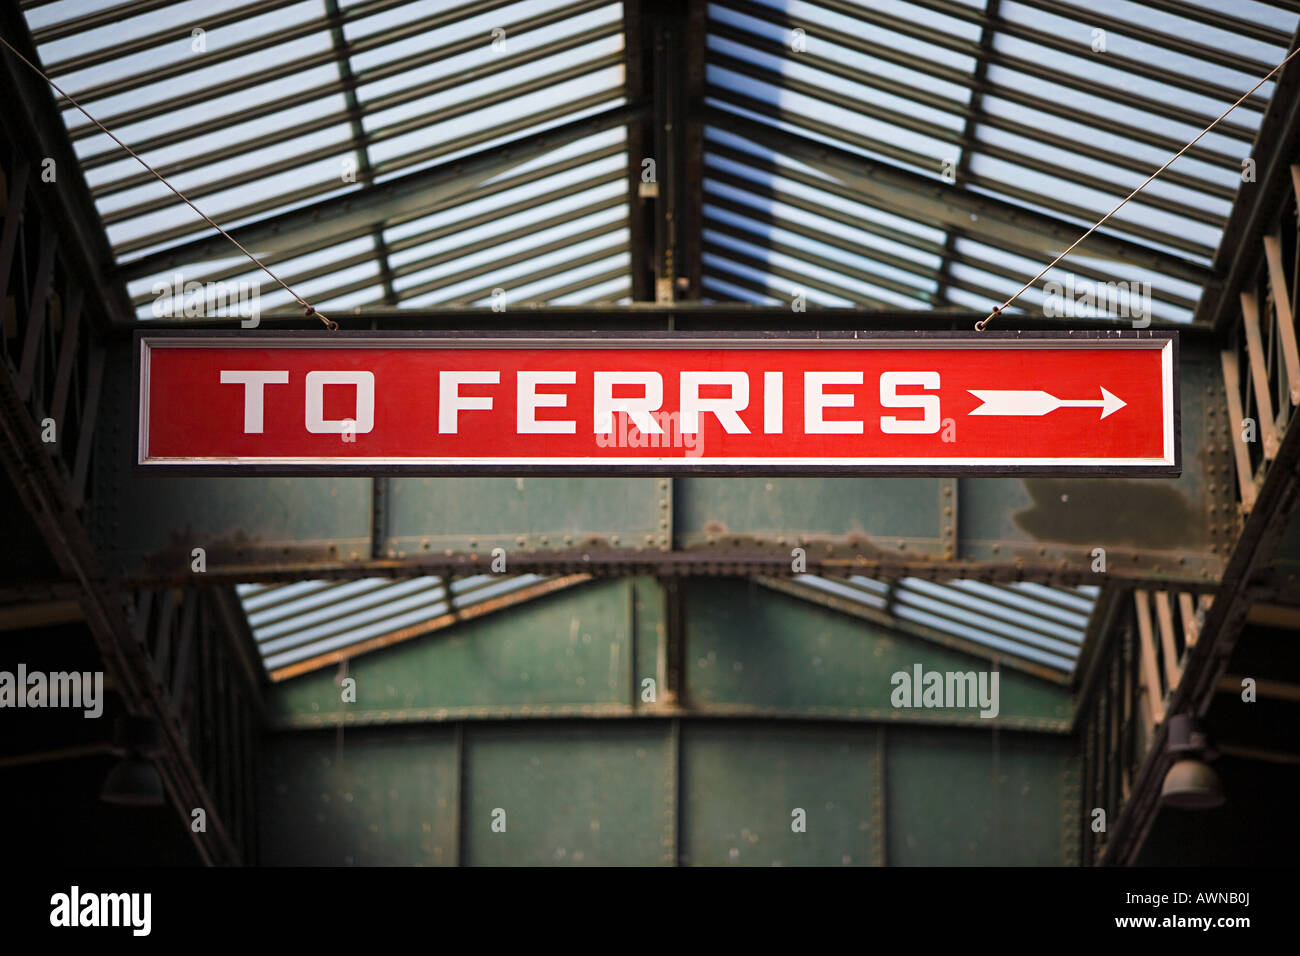 Ferries sign - Stock Image